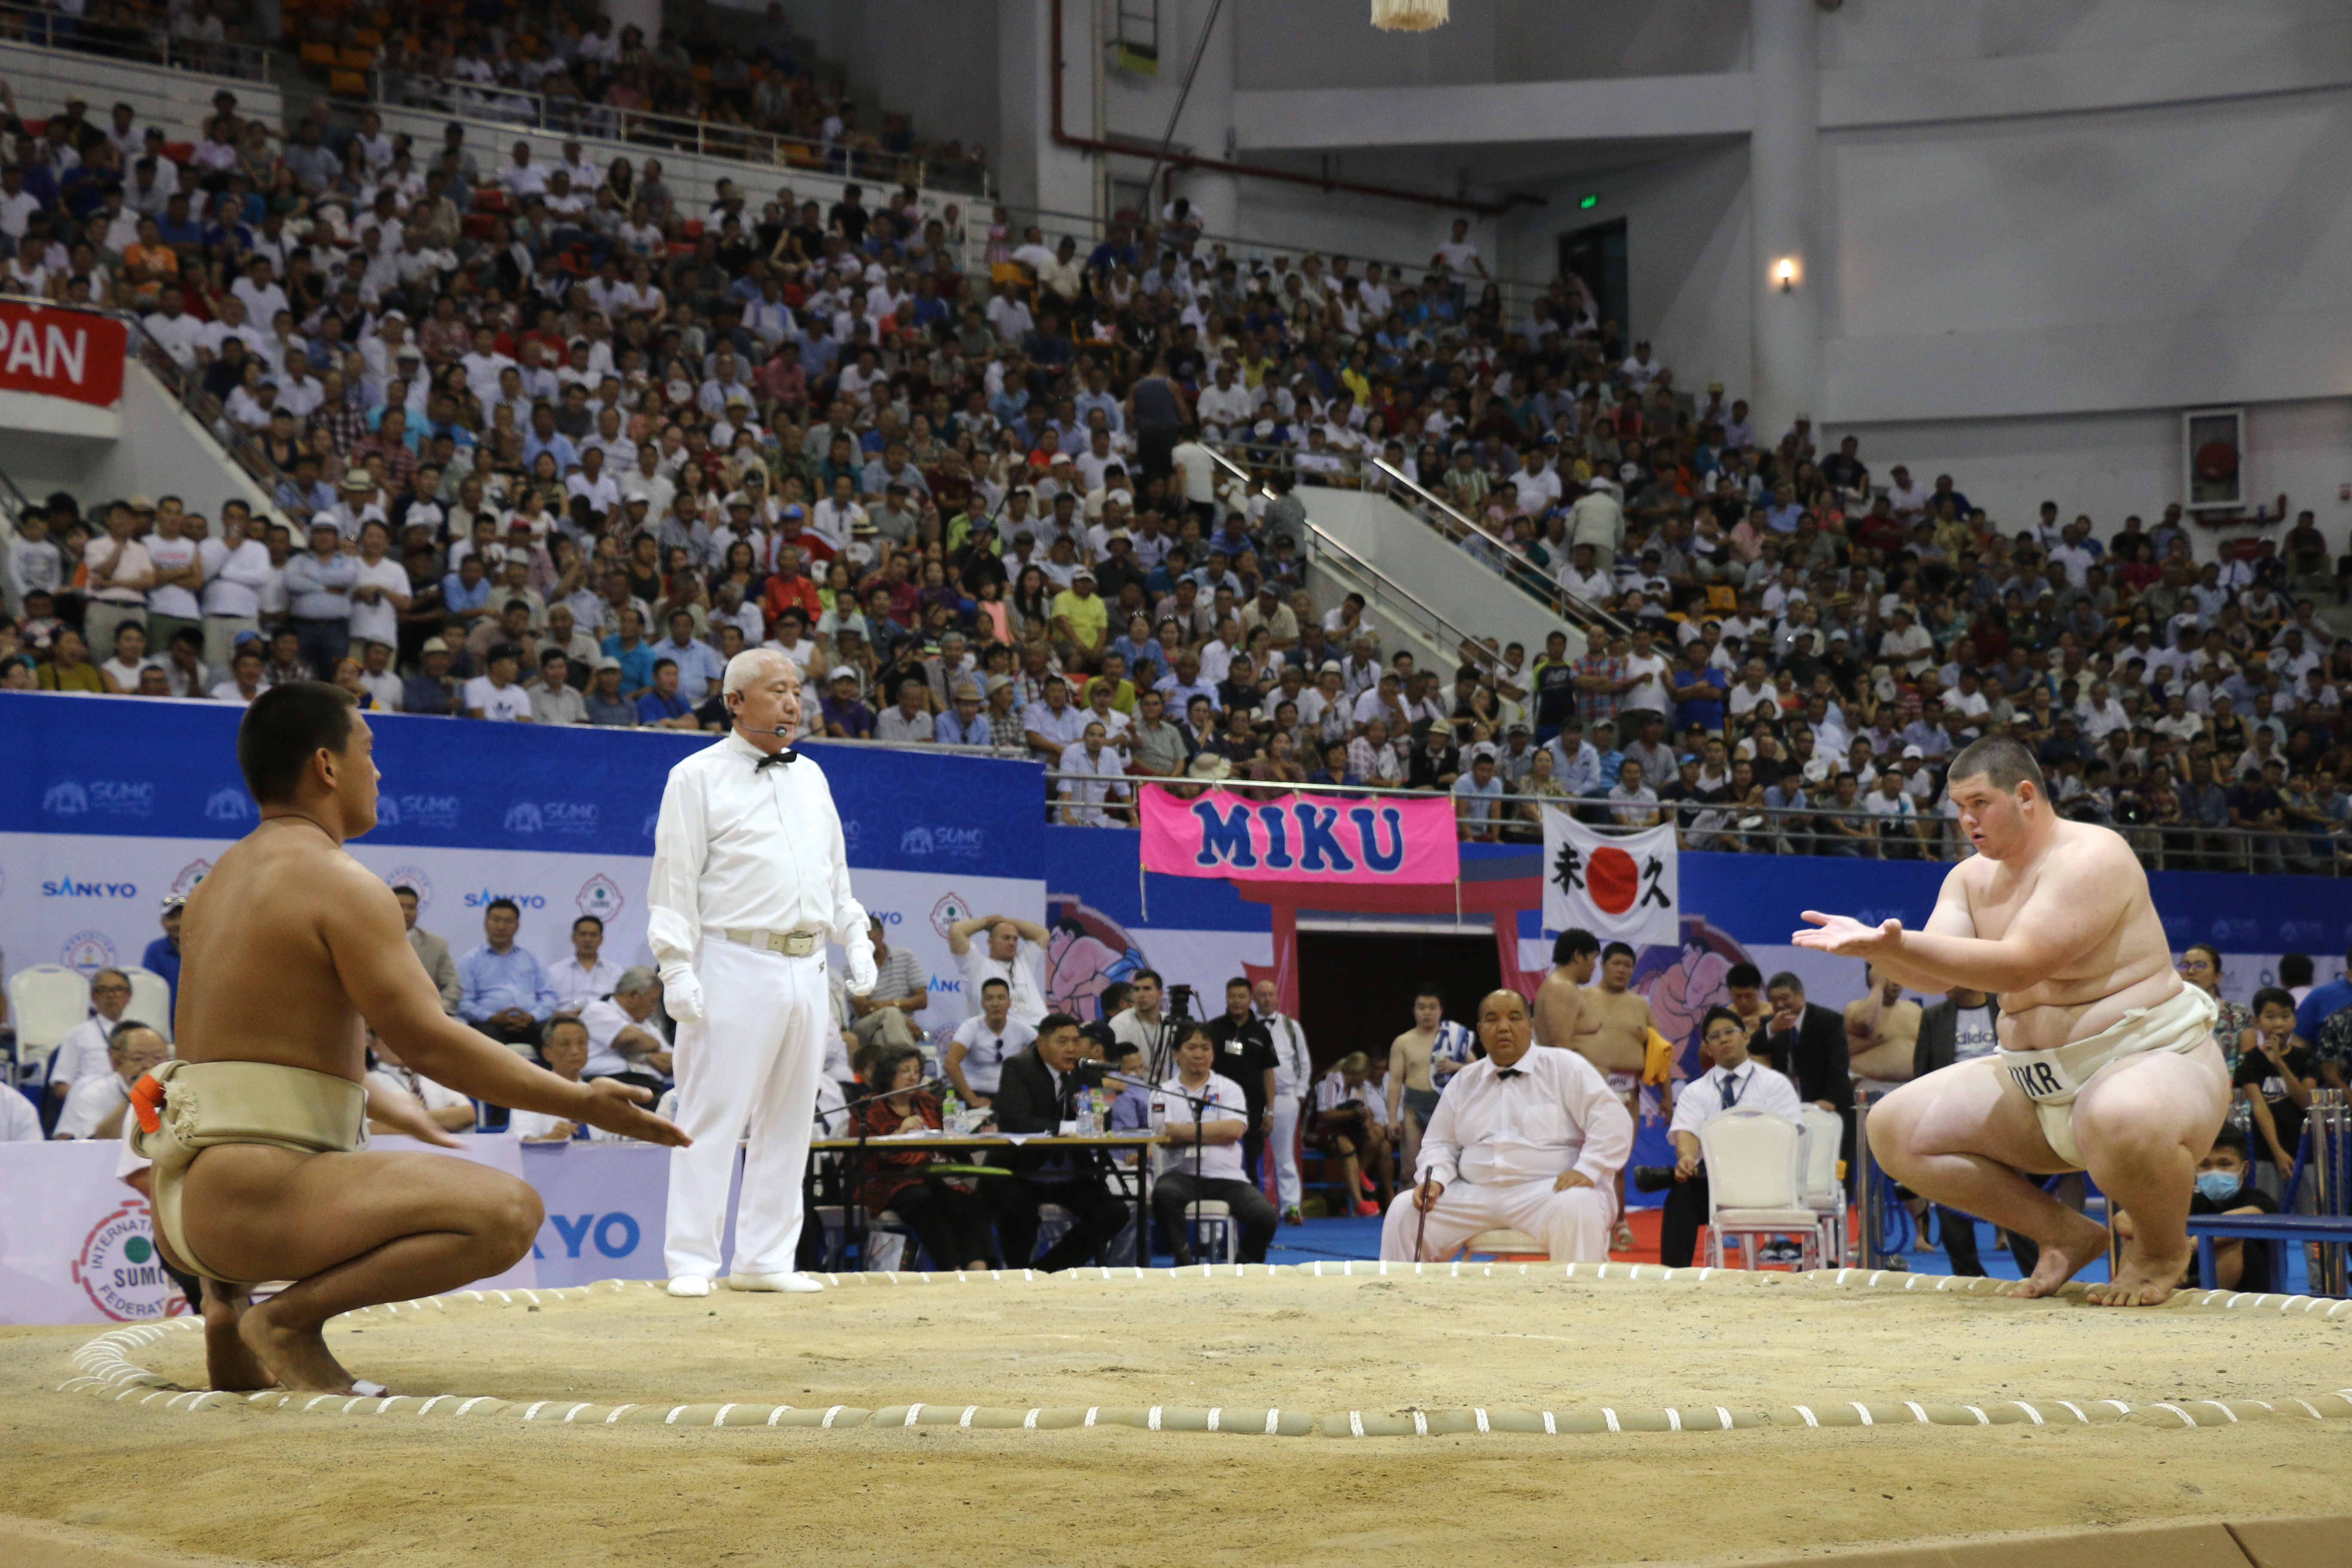 The World Sumo Championships in Mongolia